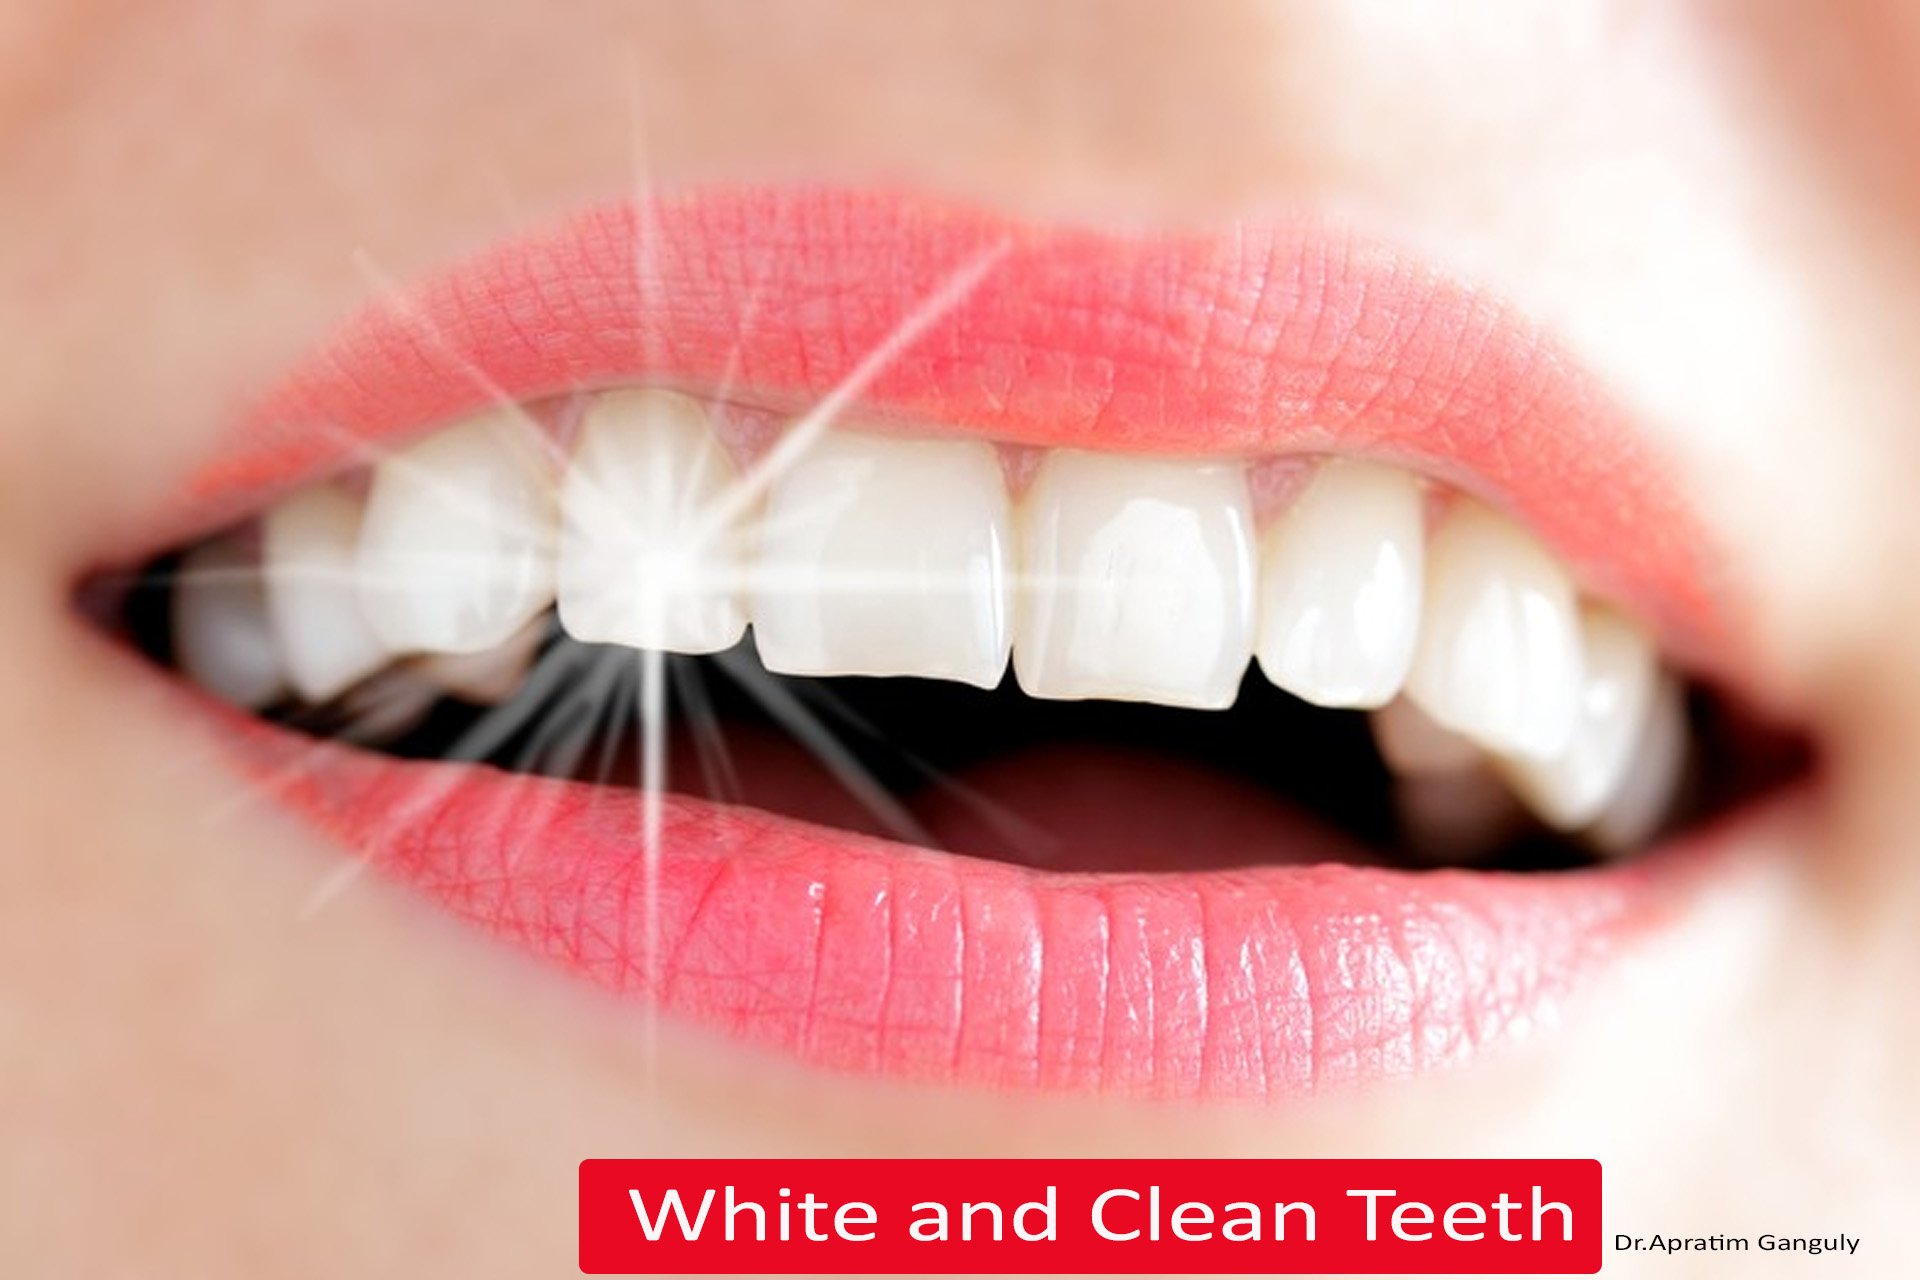 How to Have White and Clean Teeth?